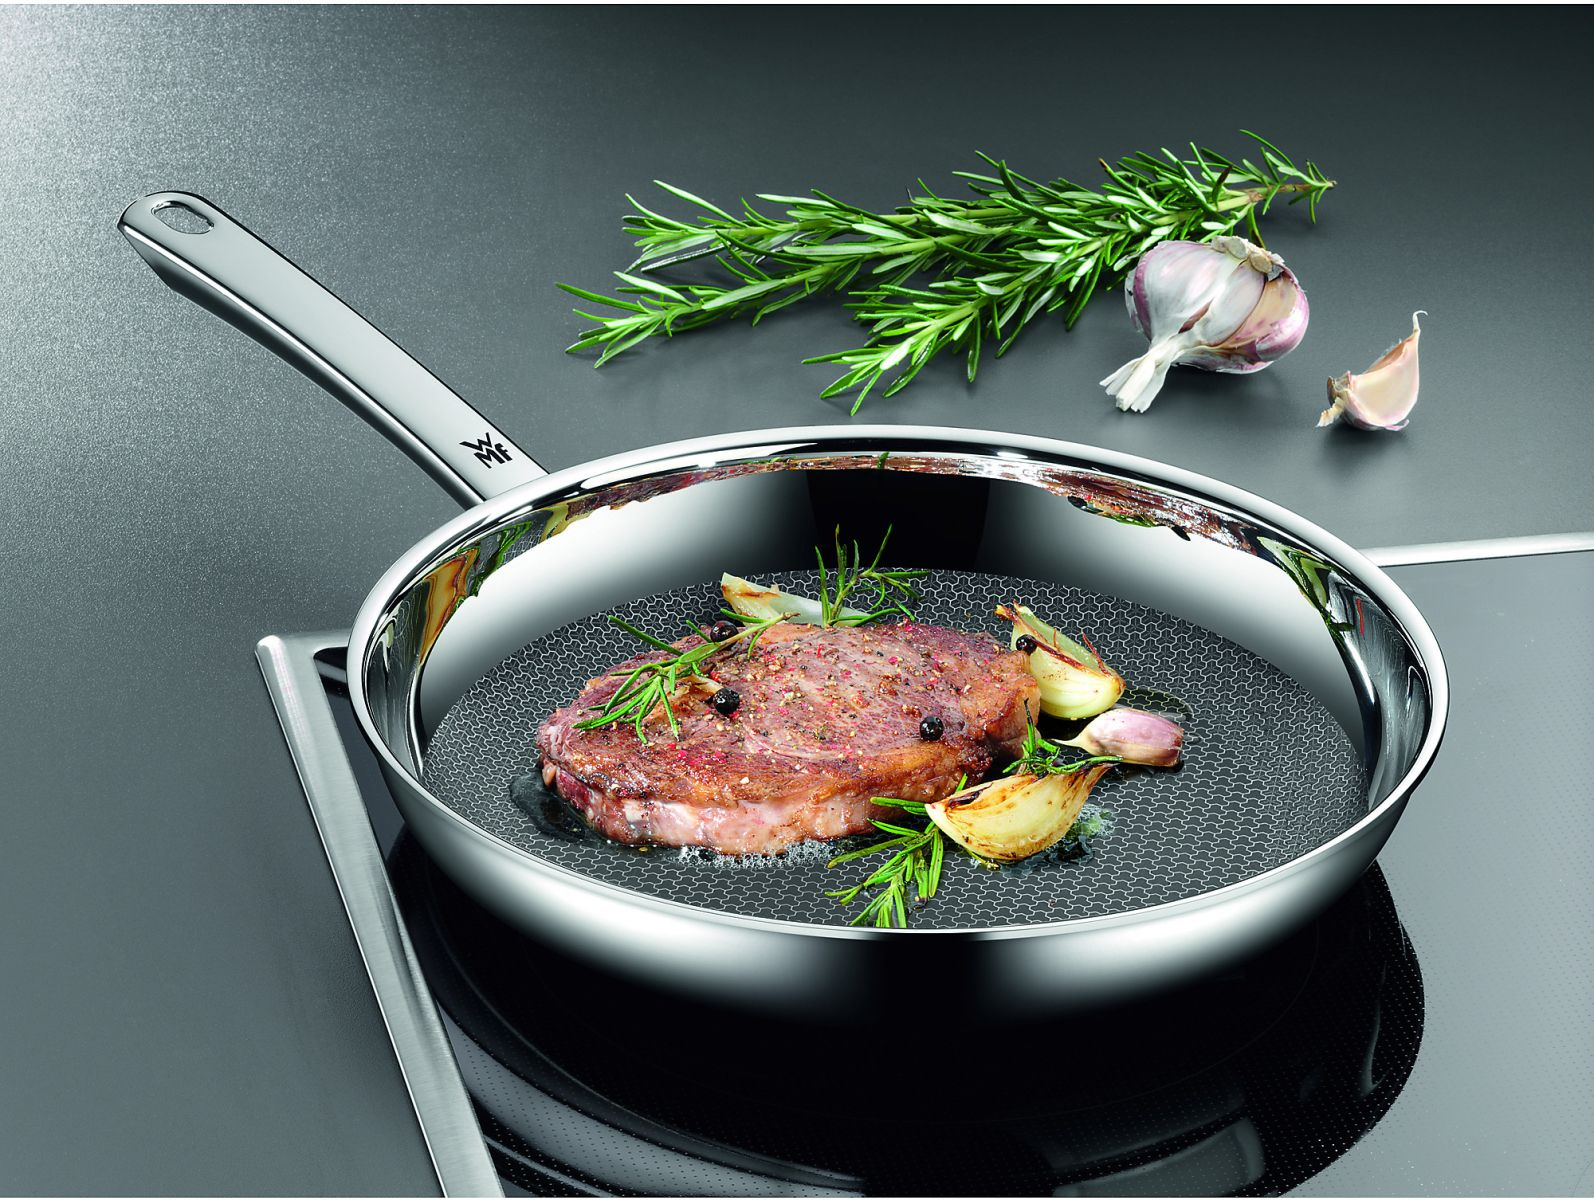 WMF ProfiResist Non-Stick Frying Pan